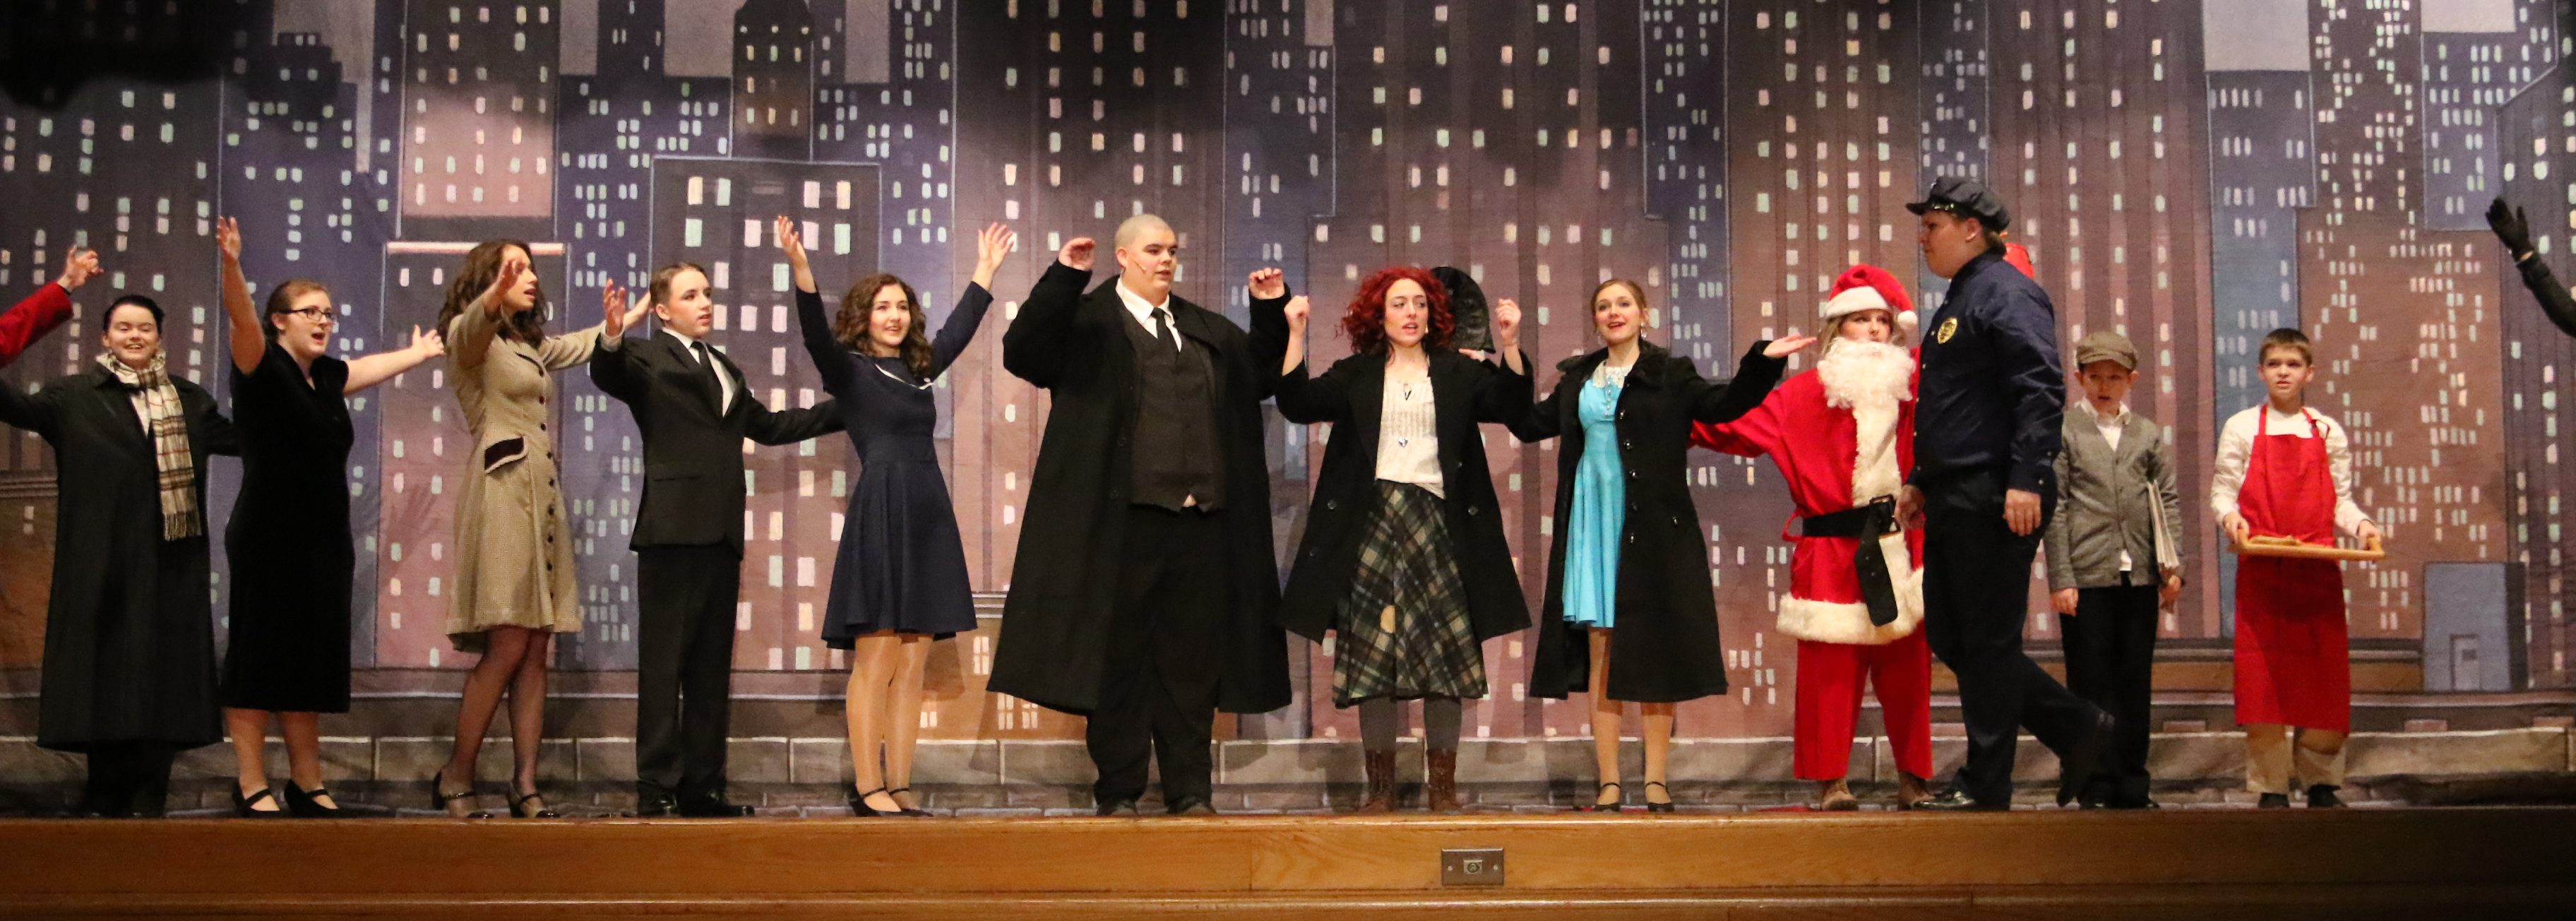 upper dauphin area student musical production